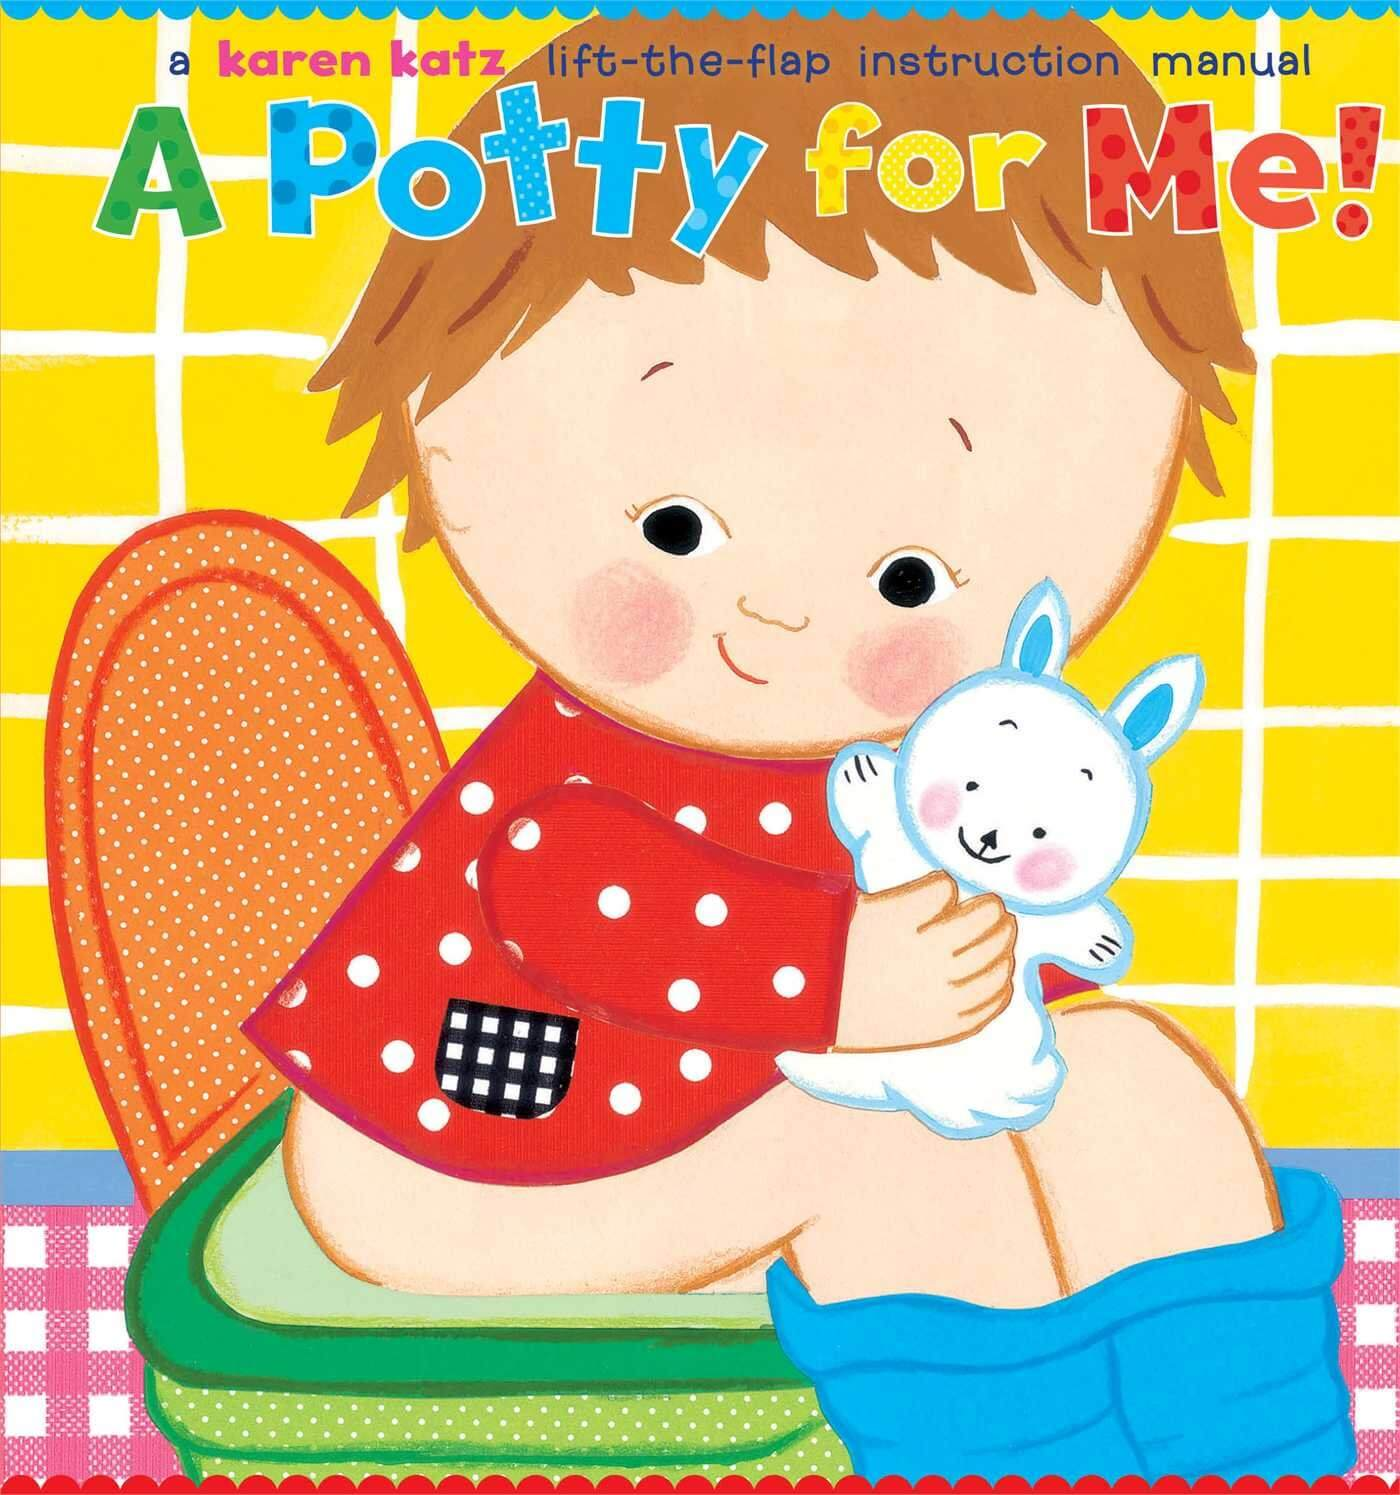 best potty training books for toddlers my little moppet a potty for me